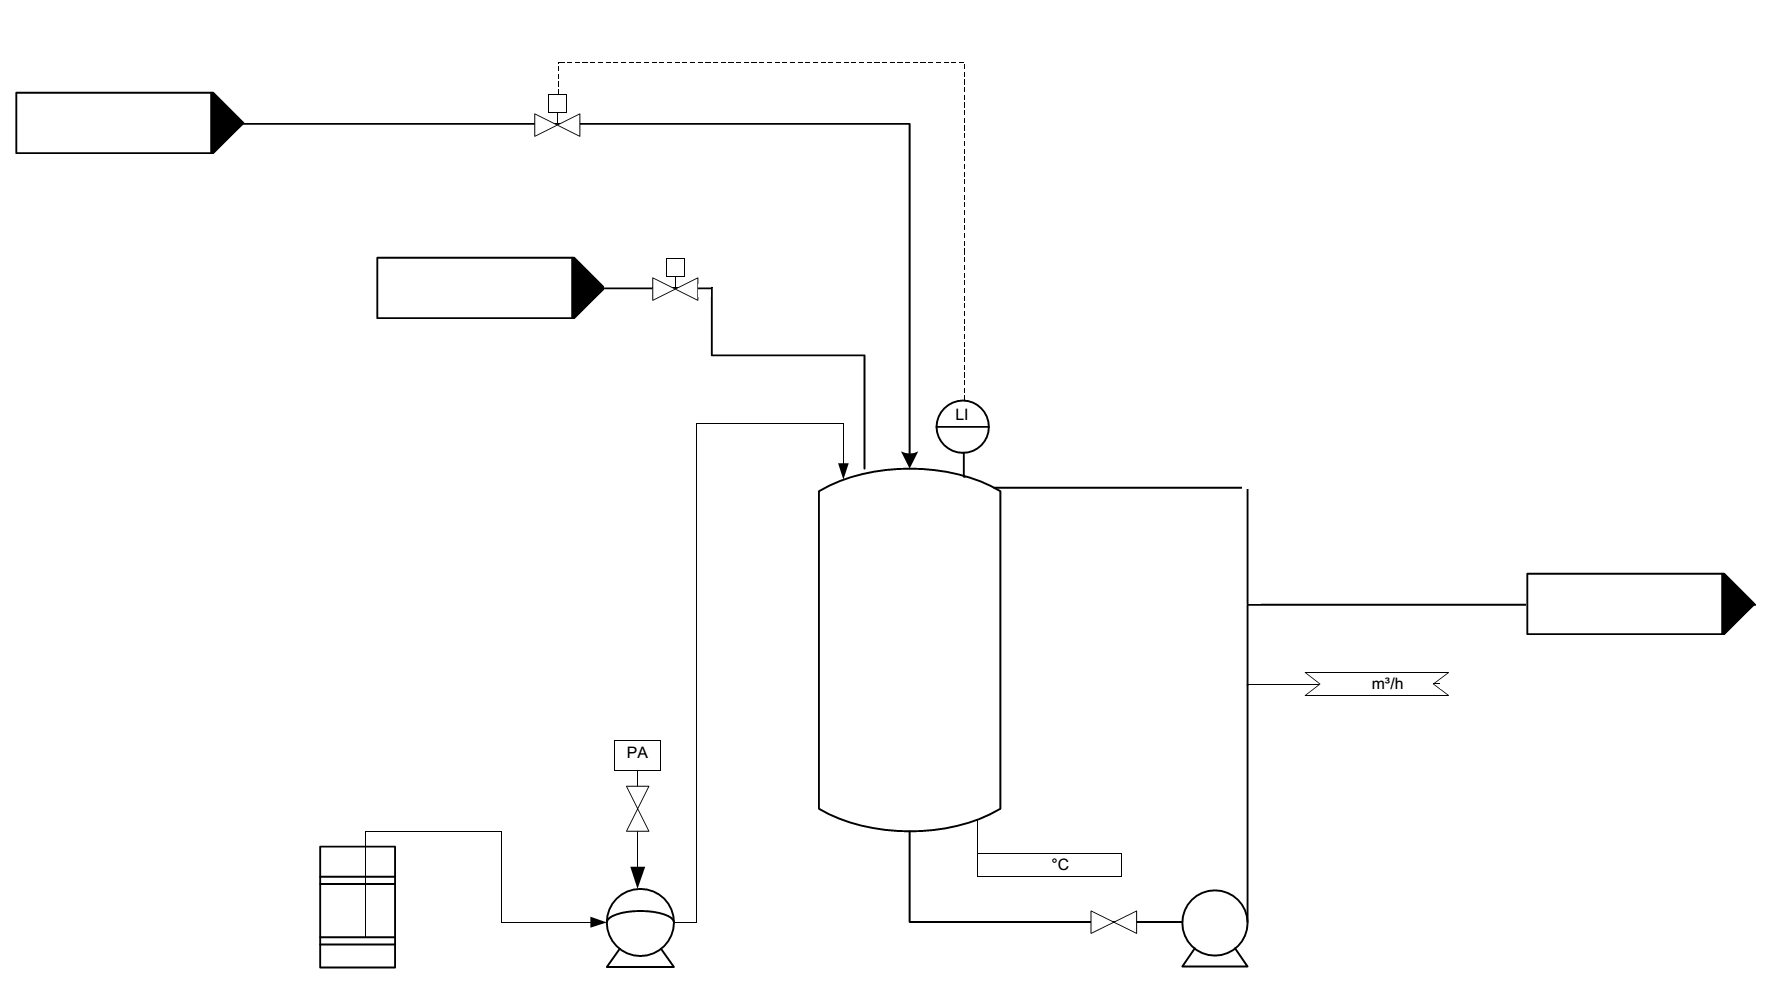 process flow diagram doc